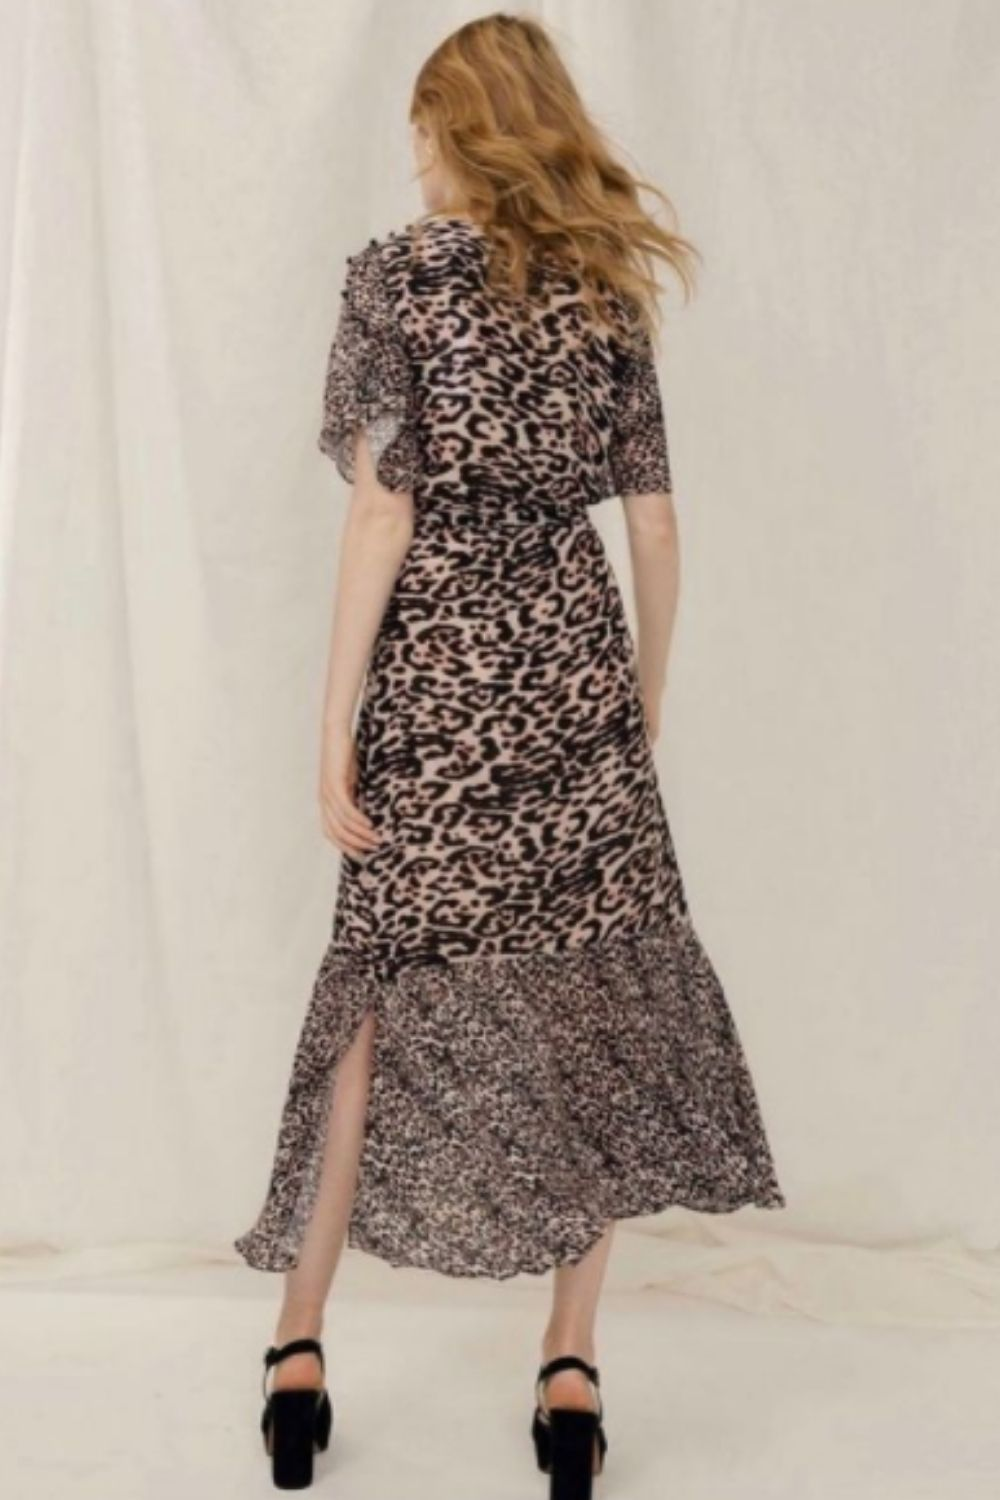 Dresses and Suits with Leopard  Outfit Design